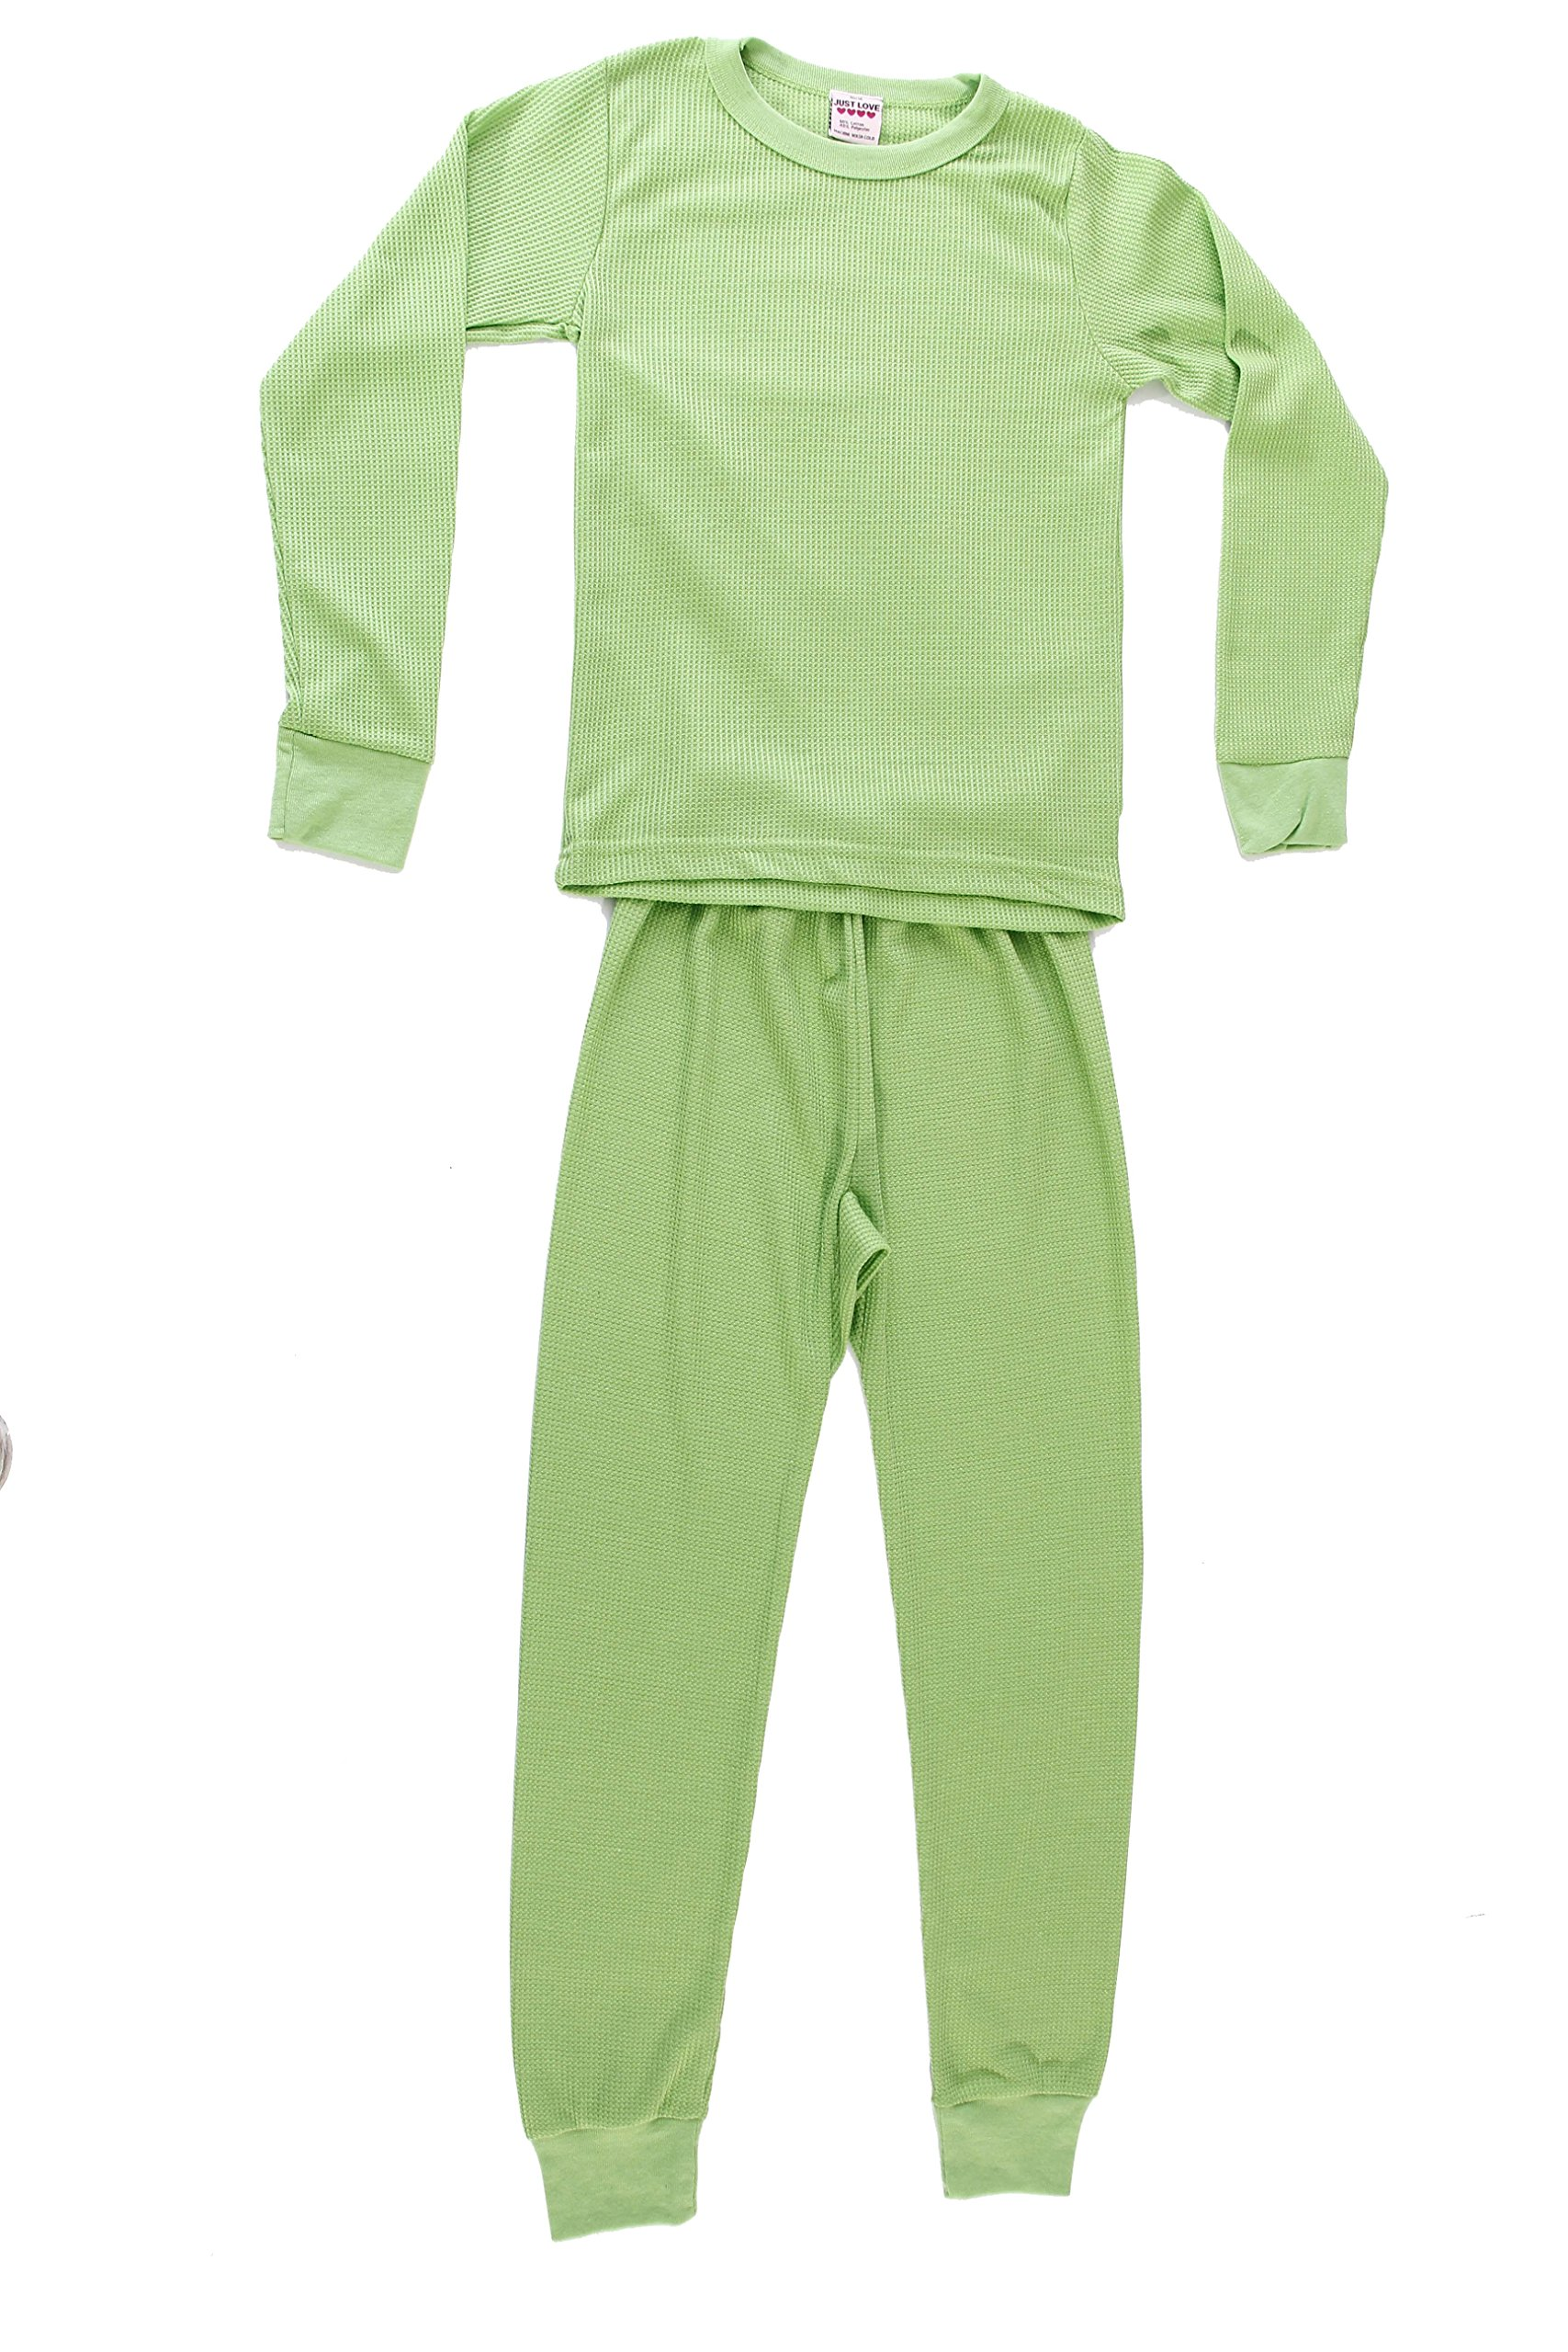 95462-Lime-14/16 Just Love Thermal Underwear Set for Girls